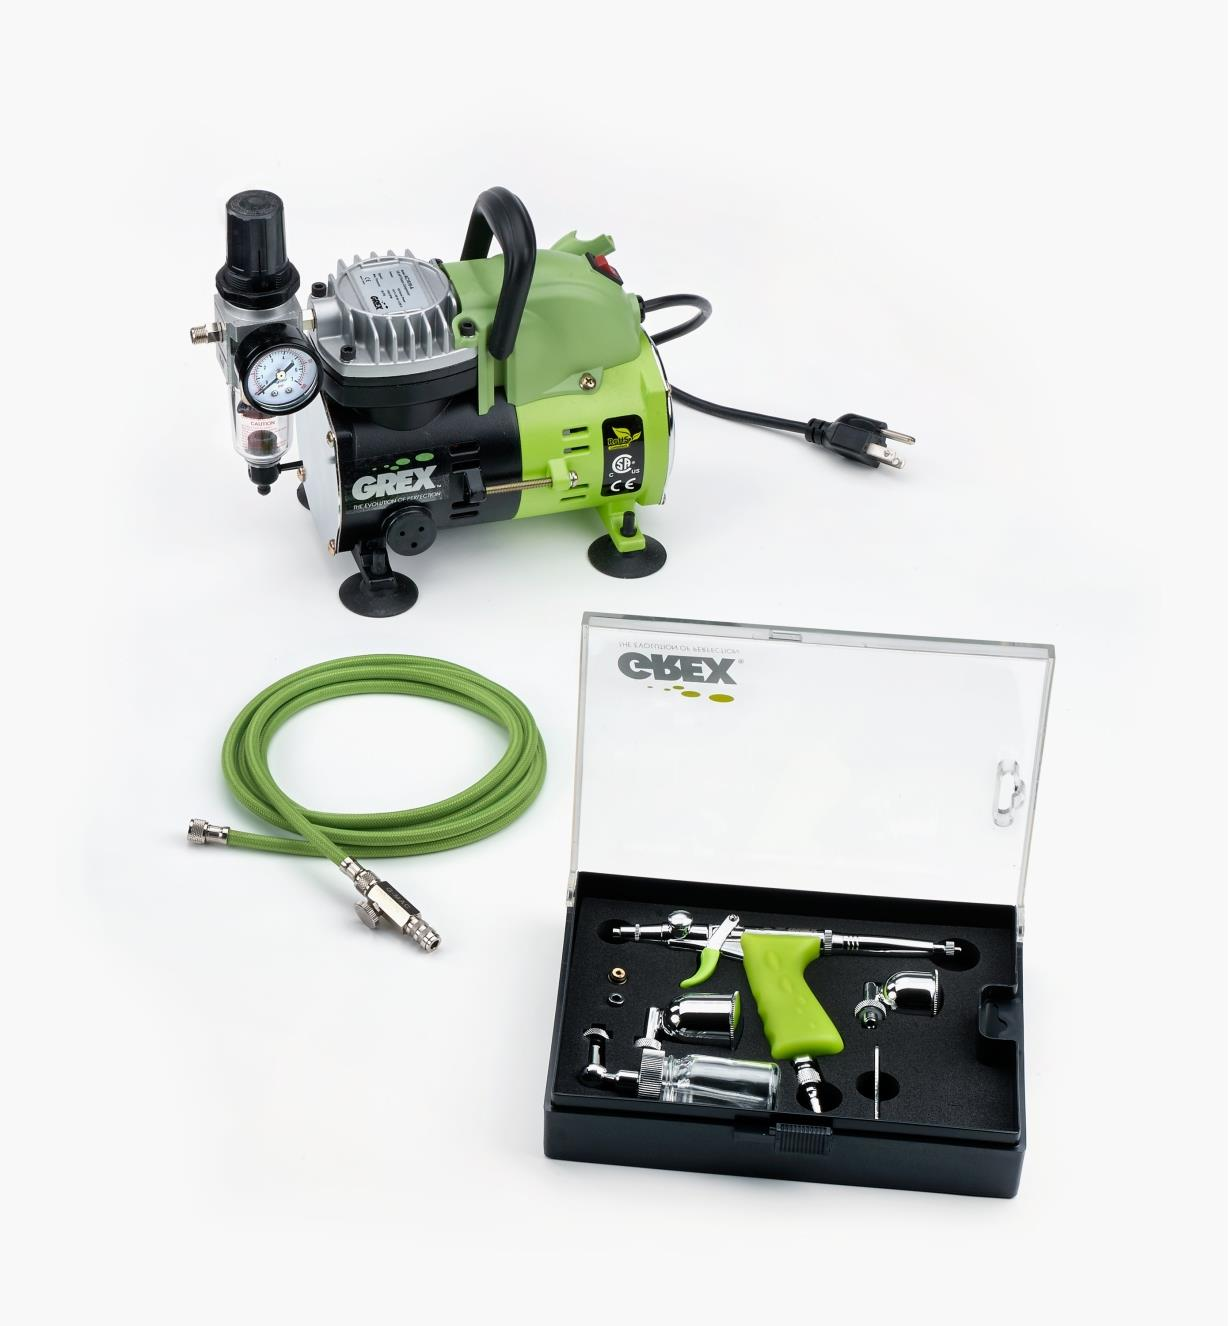 86N5550 - Grex Airbrush Kit, Side-Mount Cup